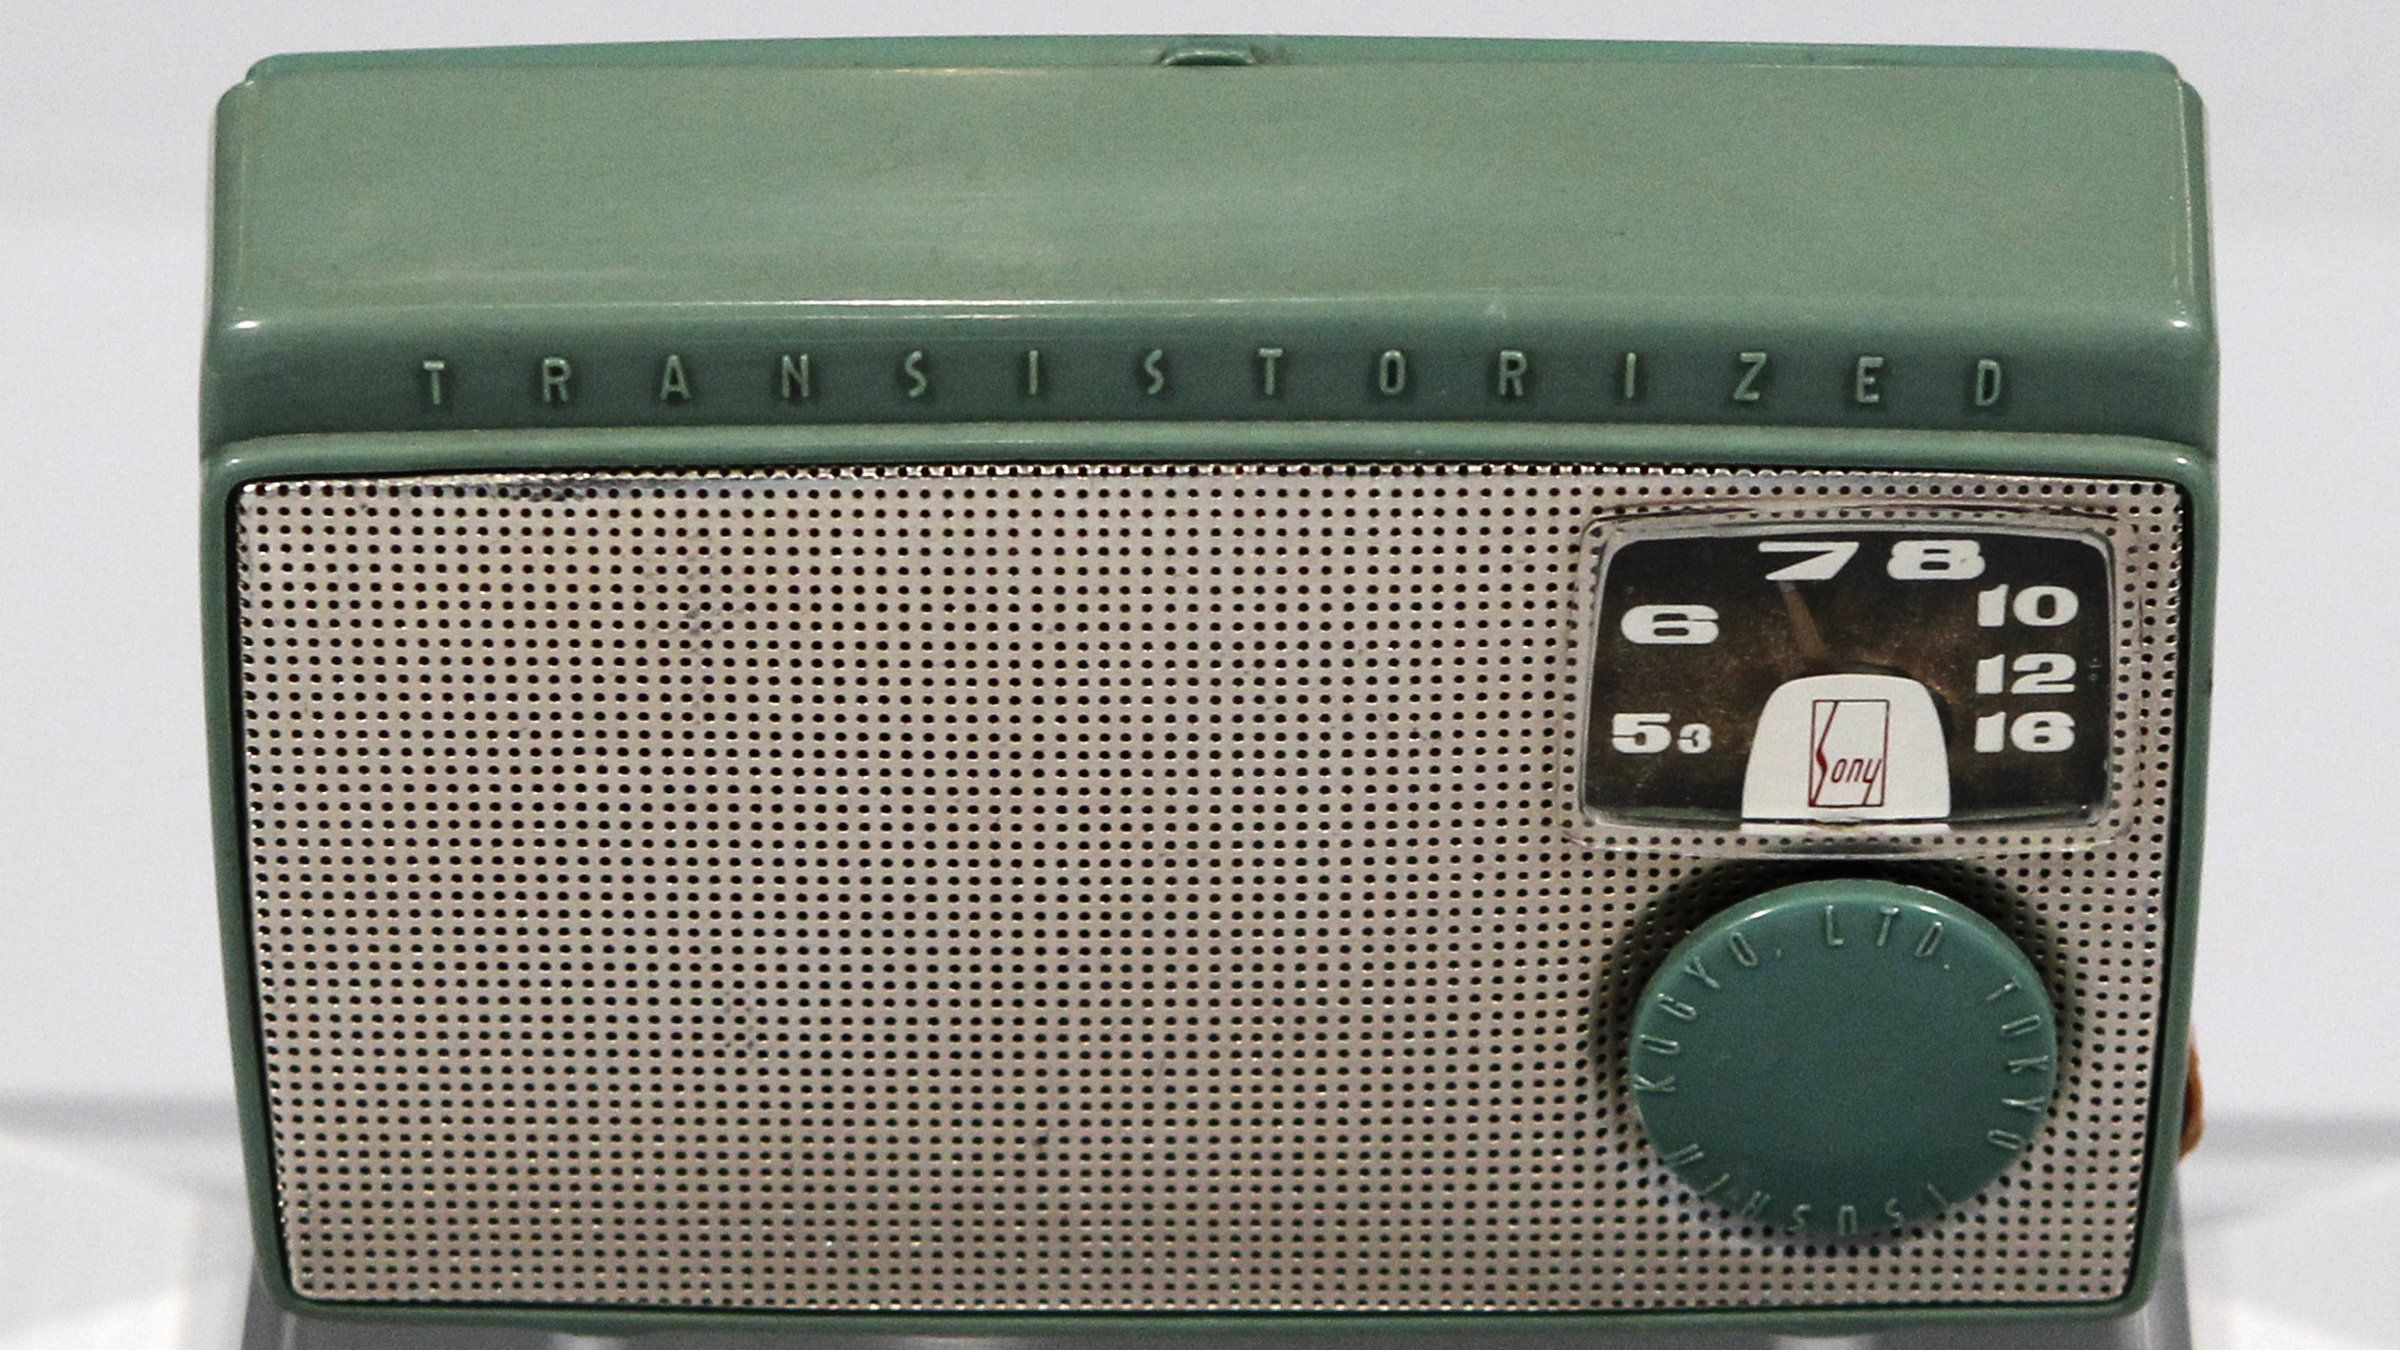 Sony's first transistor radio TR-55, which was produced 1955